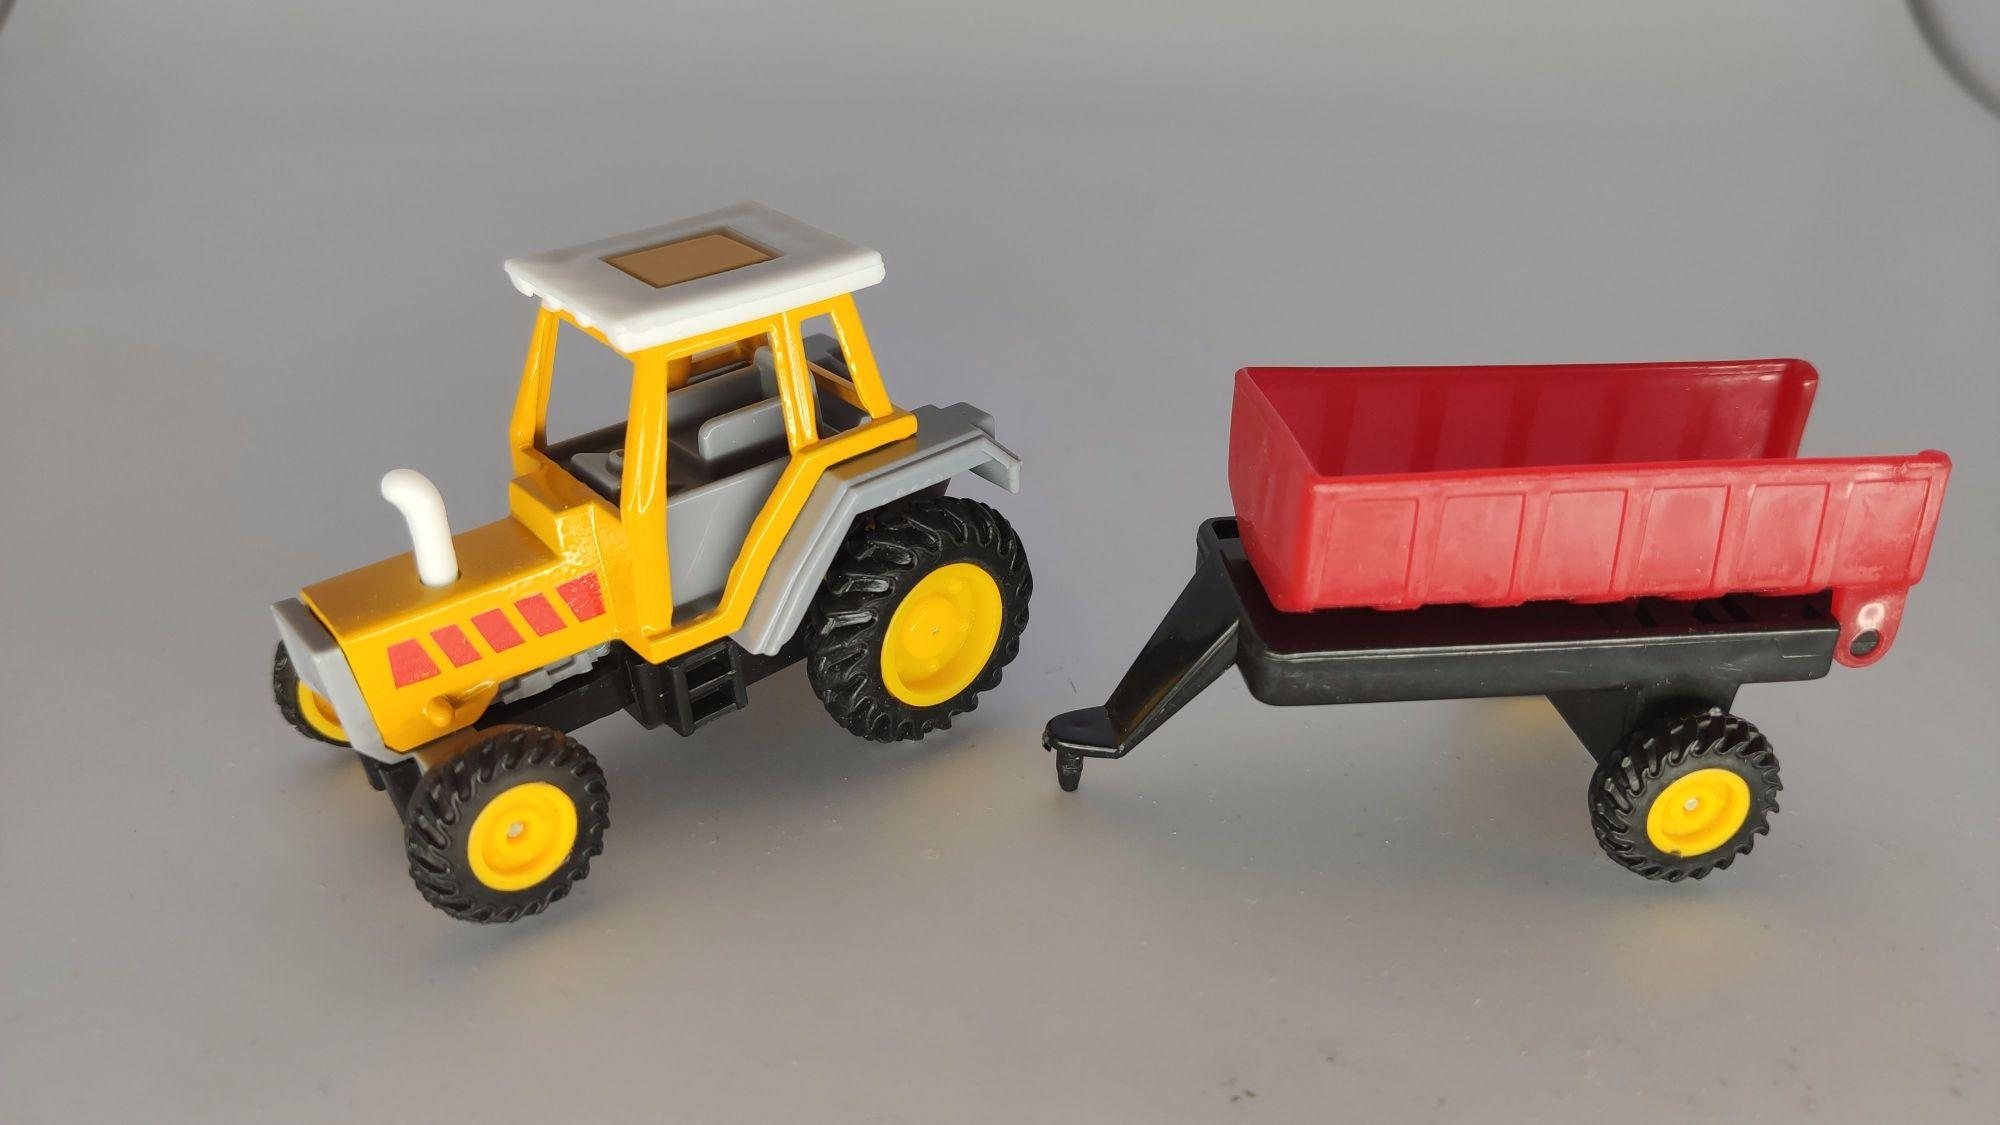 Alloy Engineering Car Tractor Toy Vehicle Farm Vehicle Tractor Toy